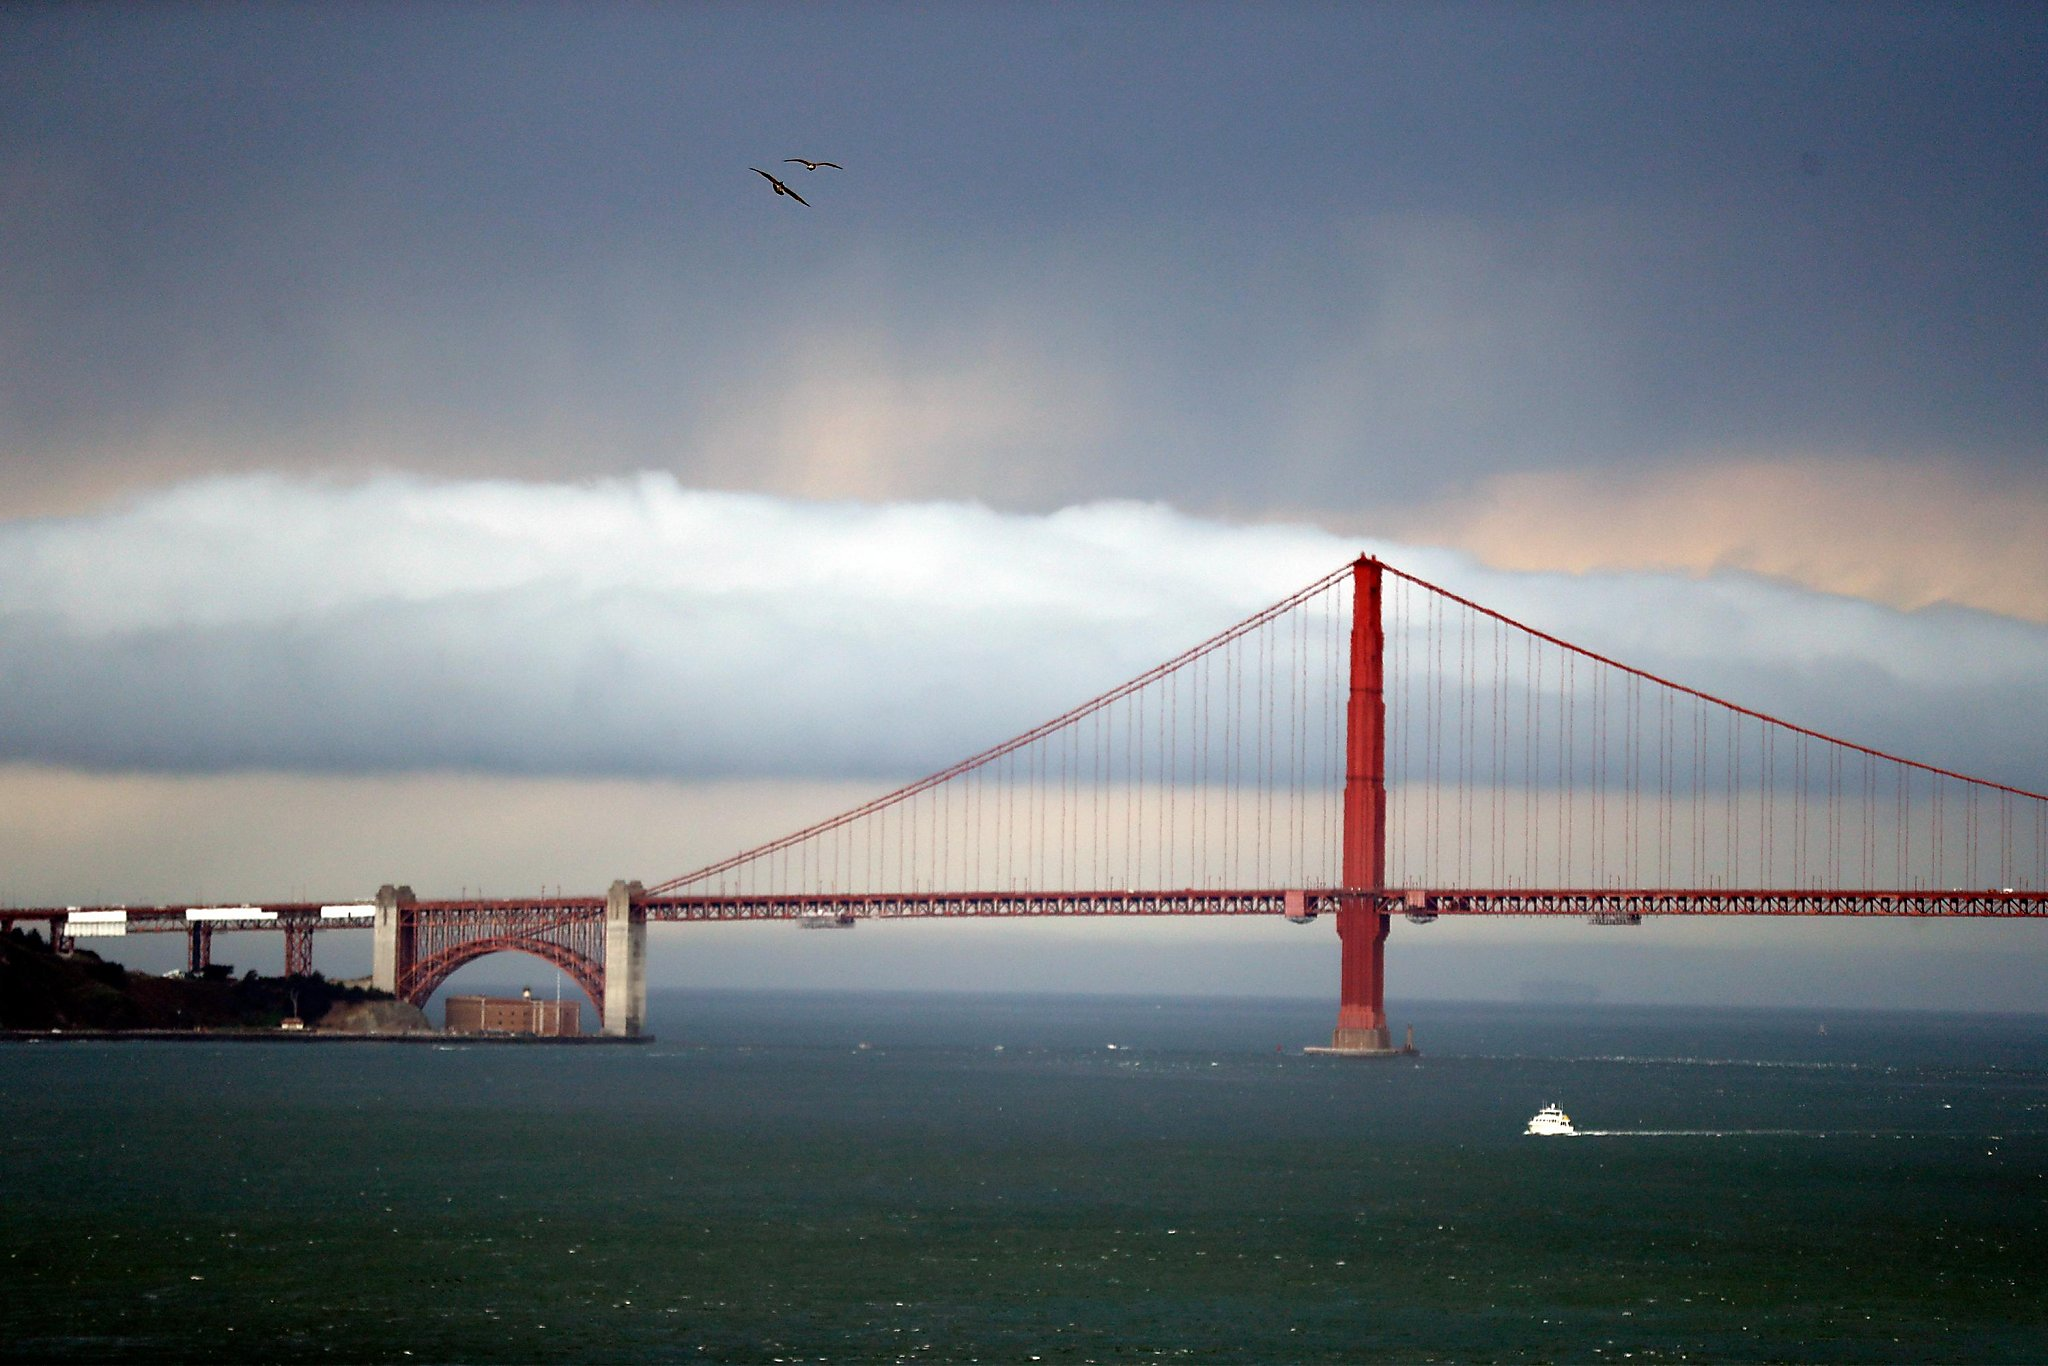 protest march ties up traffic on golden gate bridge